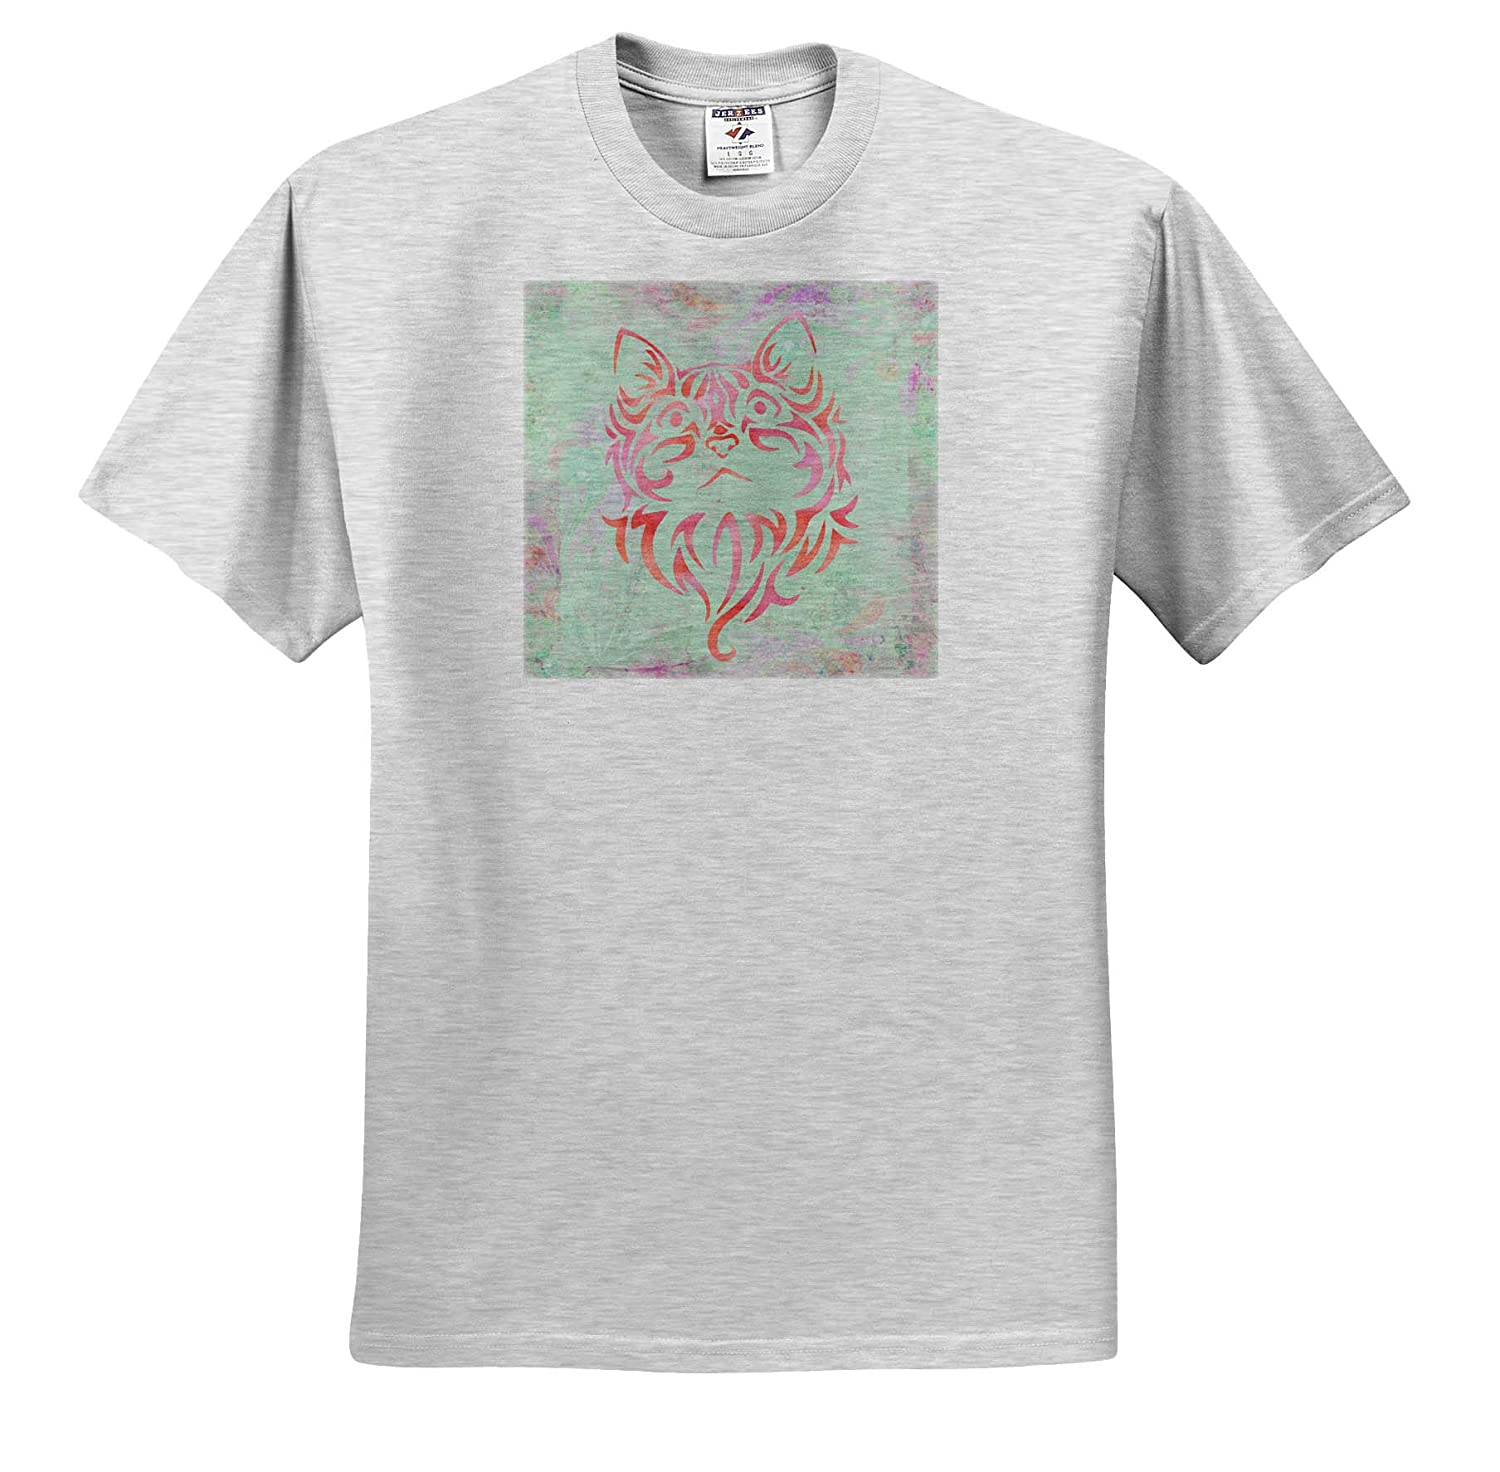 3dRose Andrea Haase Animals Illustration T-Shirts Tribal Cat Design in Pastel Colors of Pink and Teal